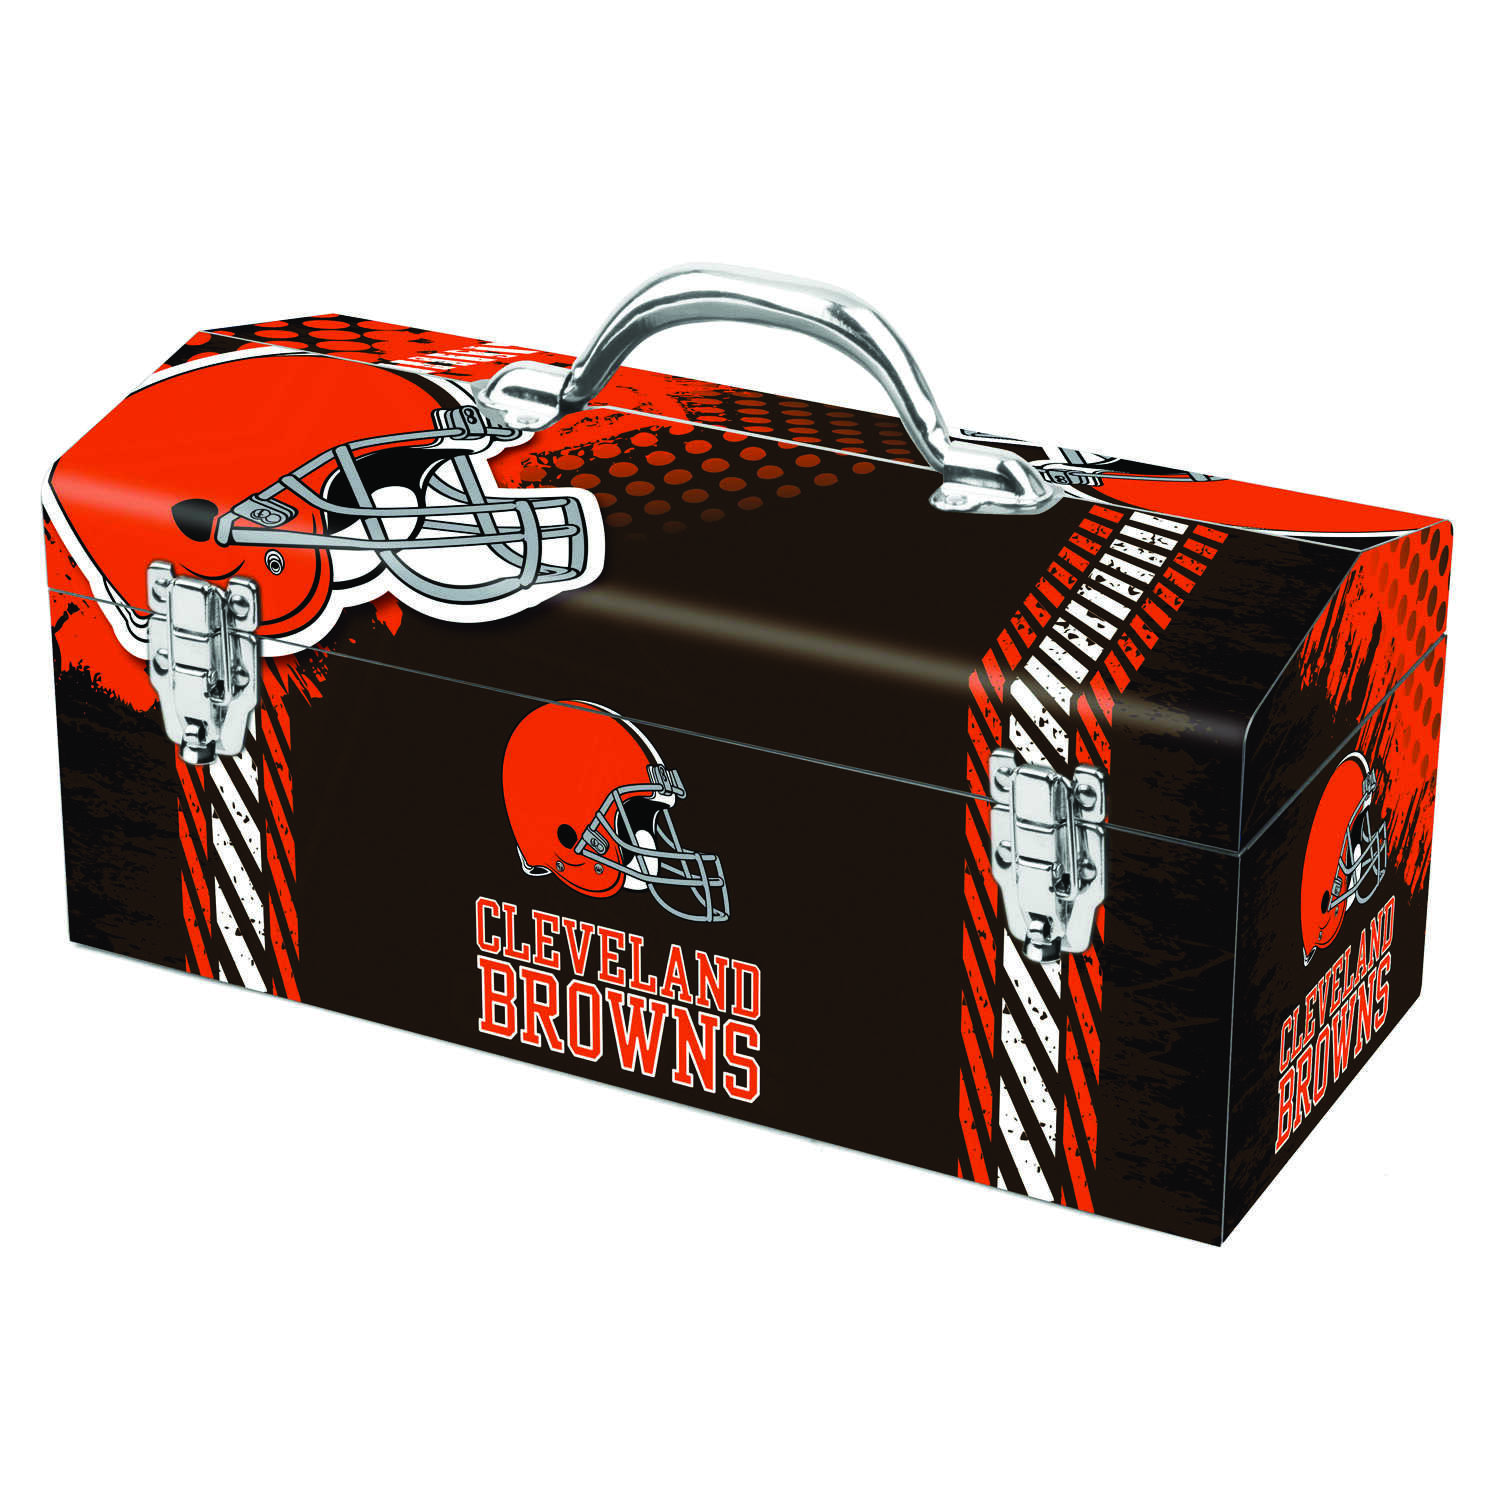 Sainty International  16.25 in. Steel  7.1 in. W x 7.75 in. H Cleveland Browns  Art Deco Tool Box